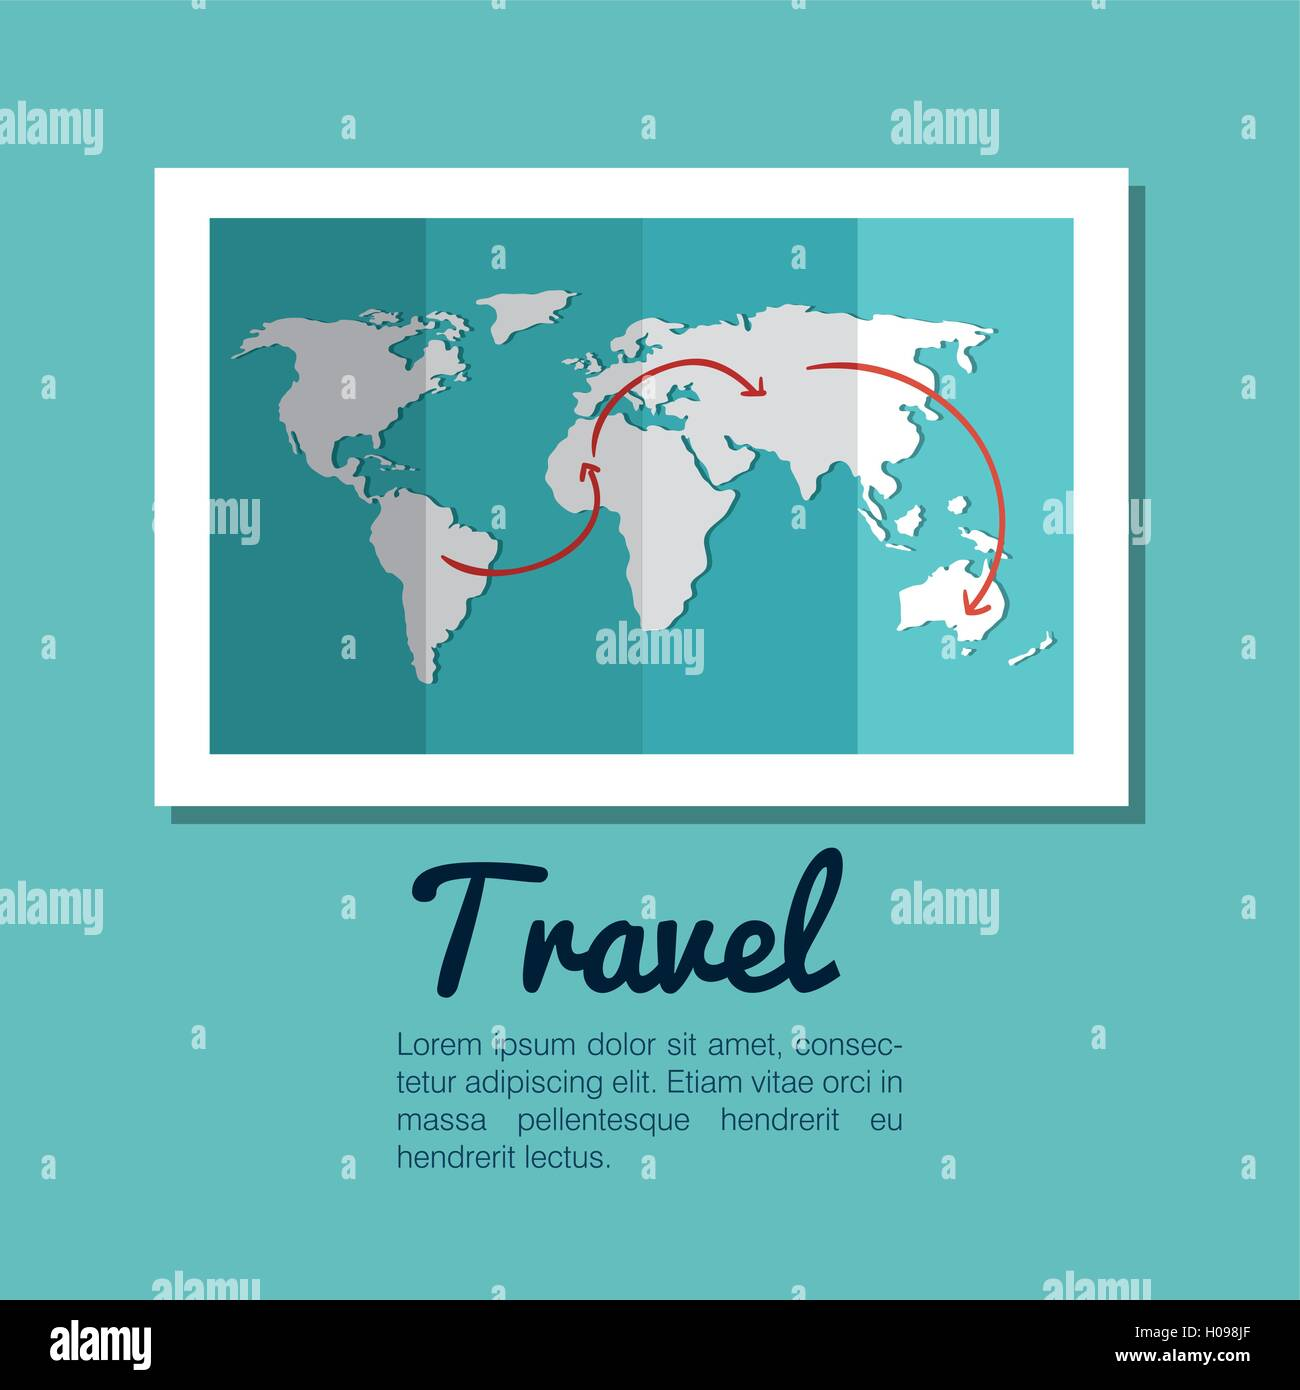 Map world globe travel design stock vector art illustration map world globe travel design gumiabroncs Choice Image